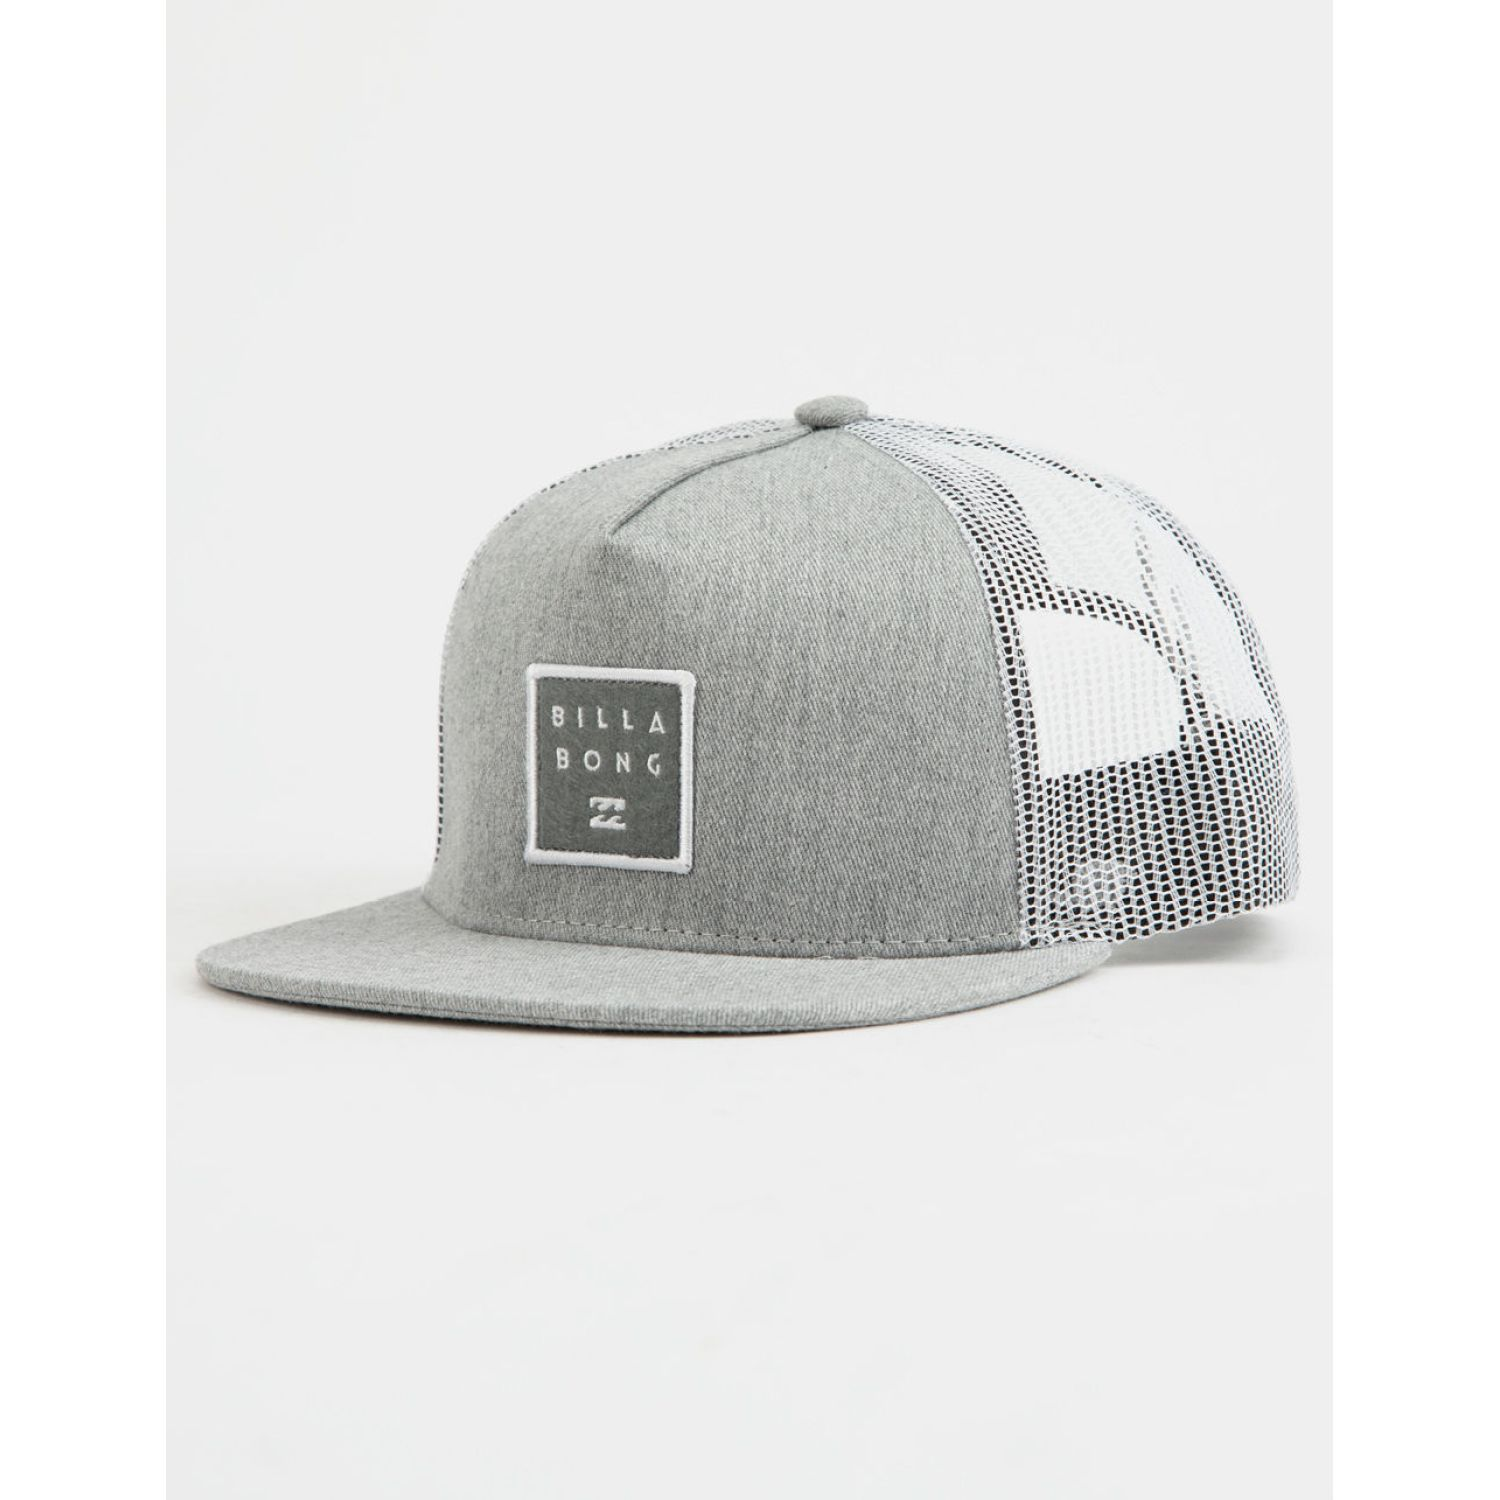 Billabong stacked trucker Gris Gorros de Baseball